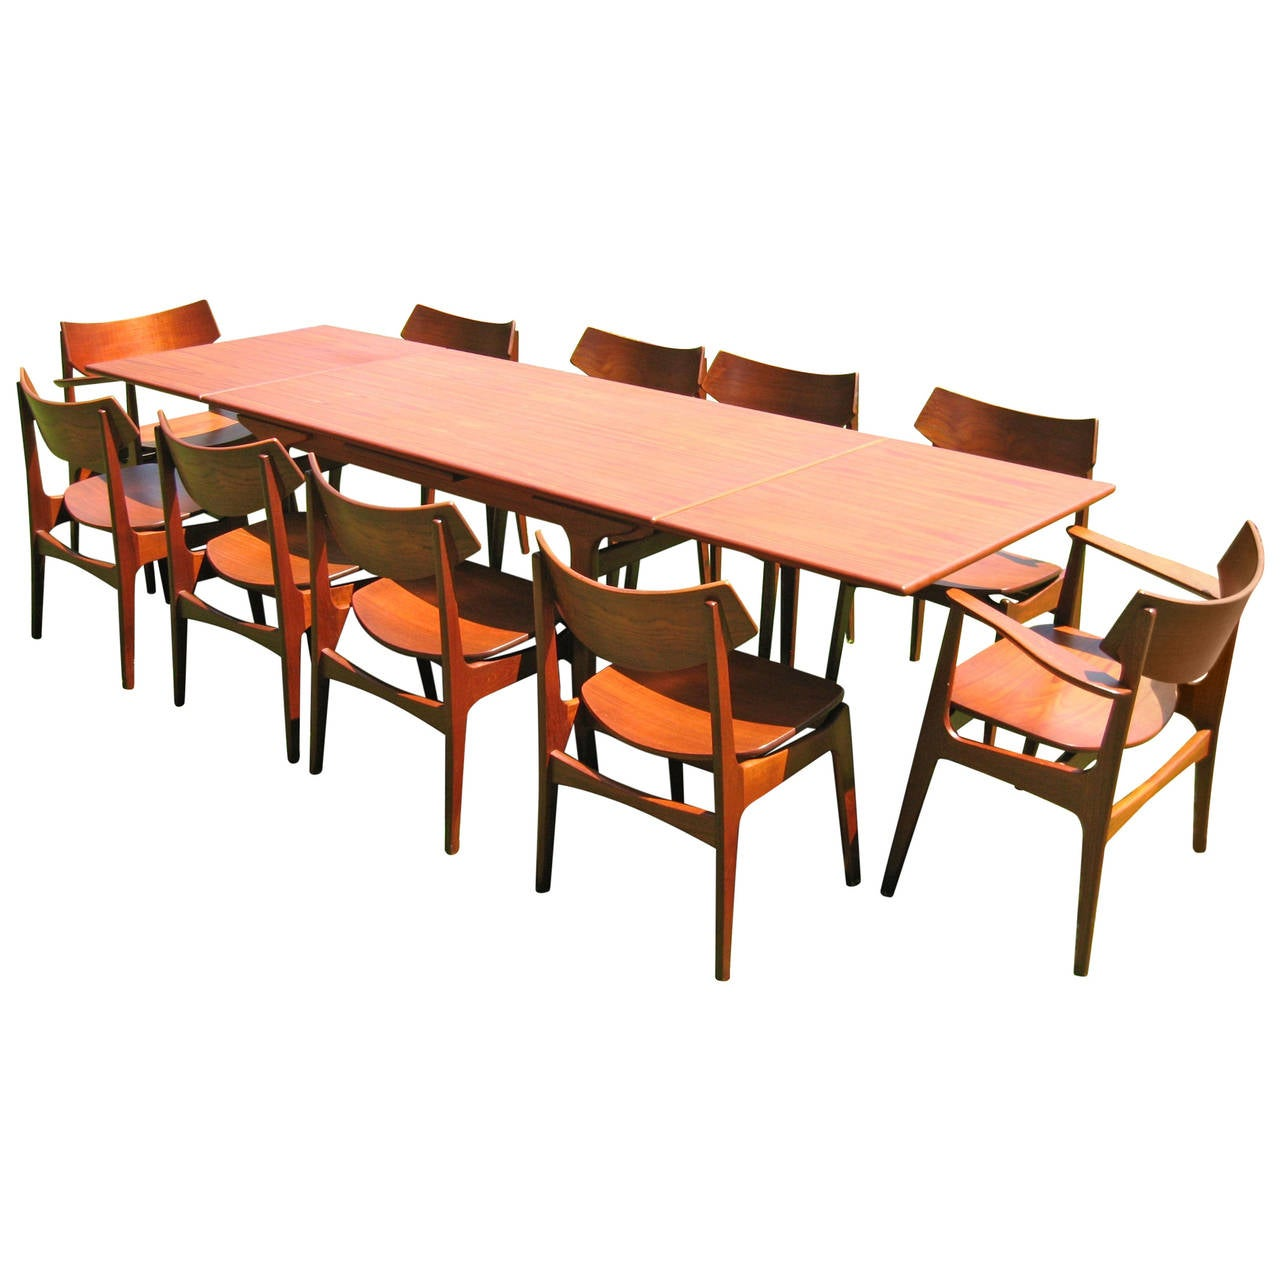 Simple Scandinavian Dining Room Ideas 10: Teak Danish Modern Dining Room Table With Ten Chairs By